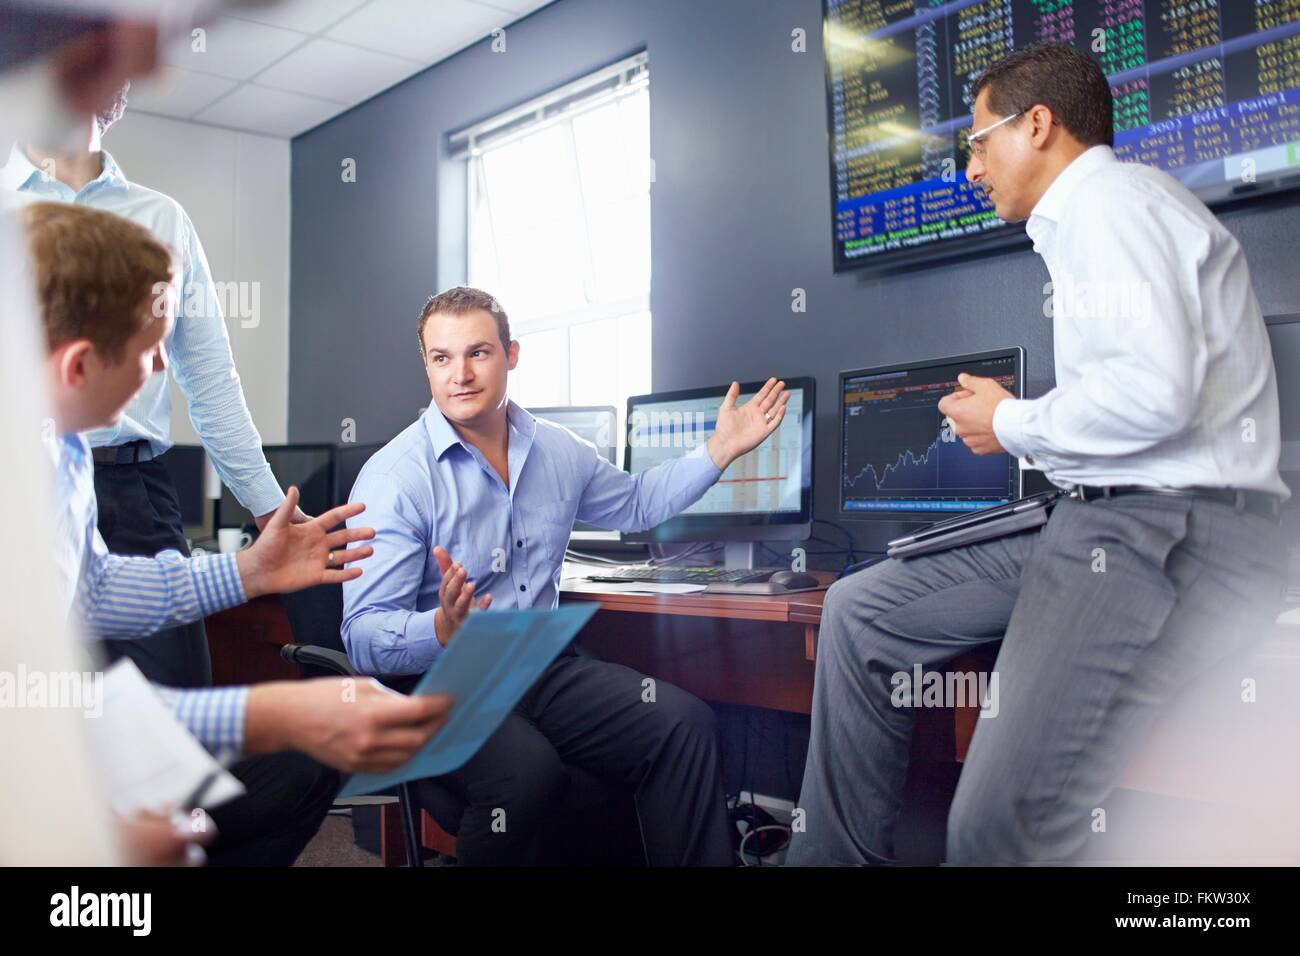 Colleagues in office having discussion, hand gestures - Stock Image